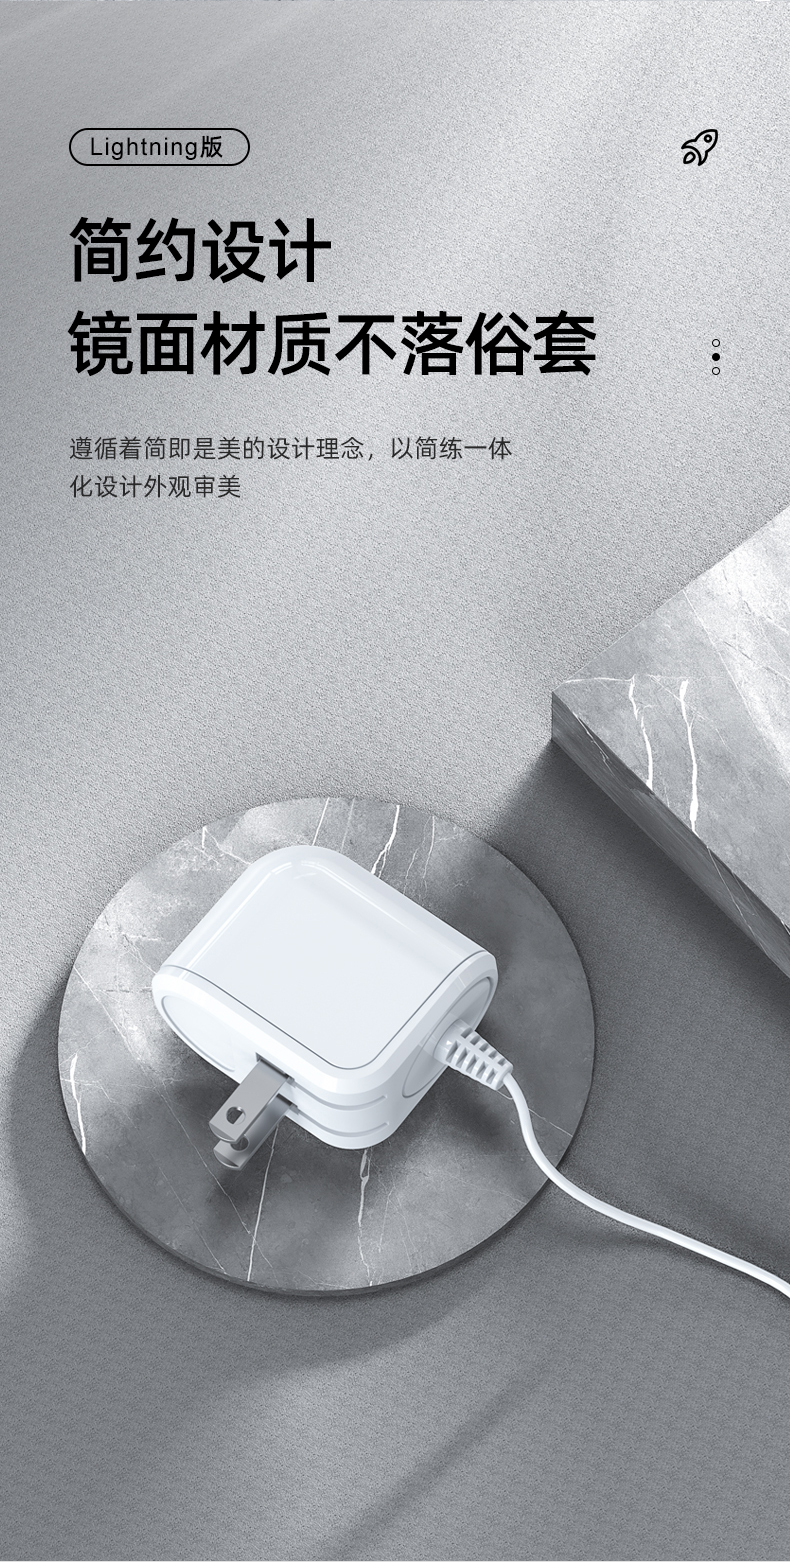 C06 12W 2.4A Quick Charge Travel Charger with Built-in Cable